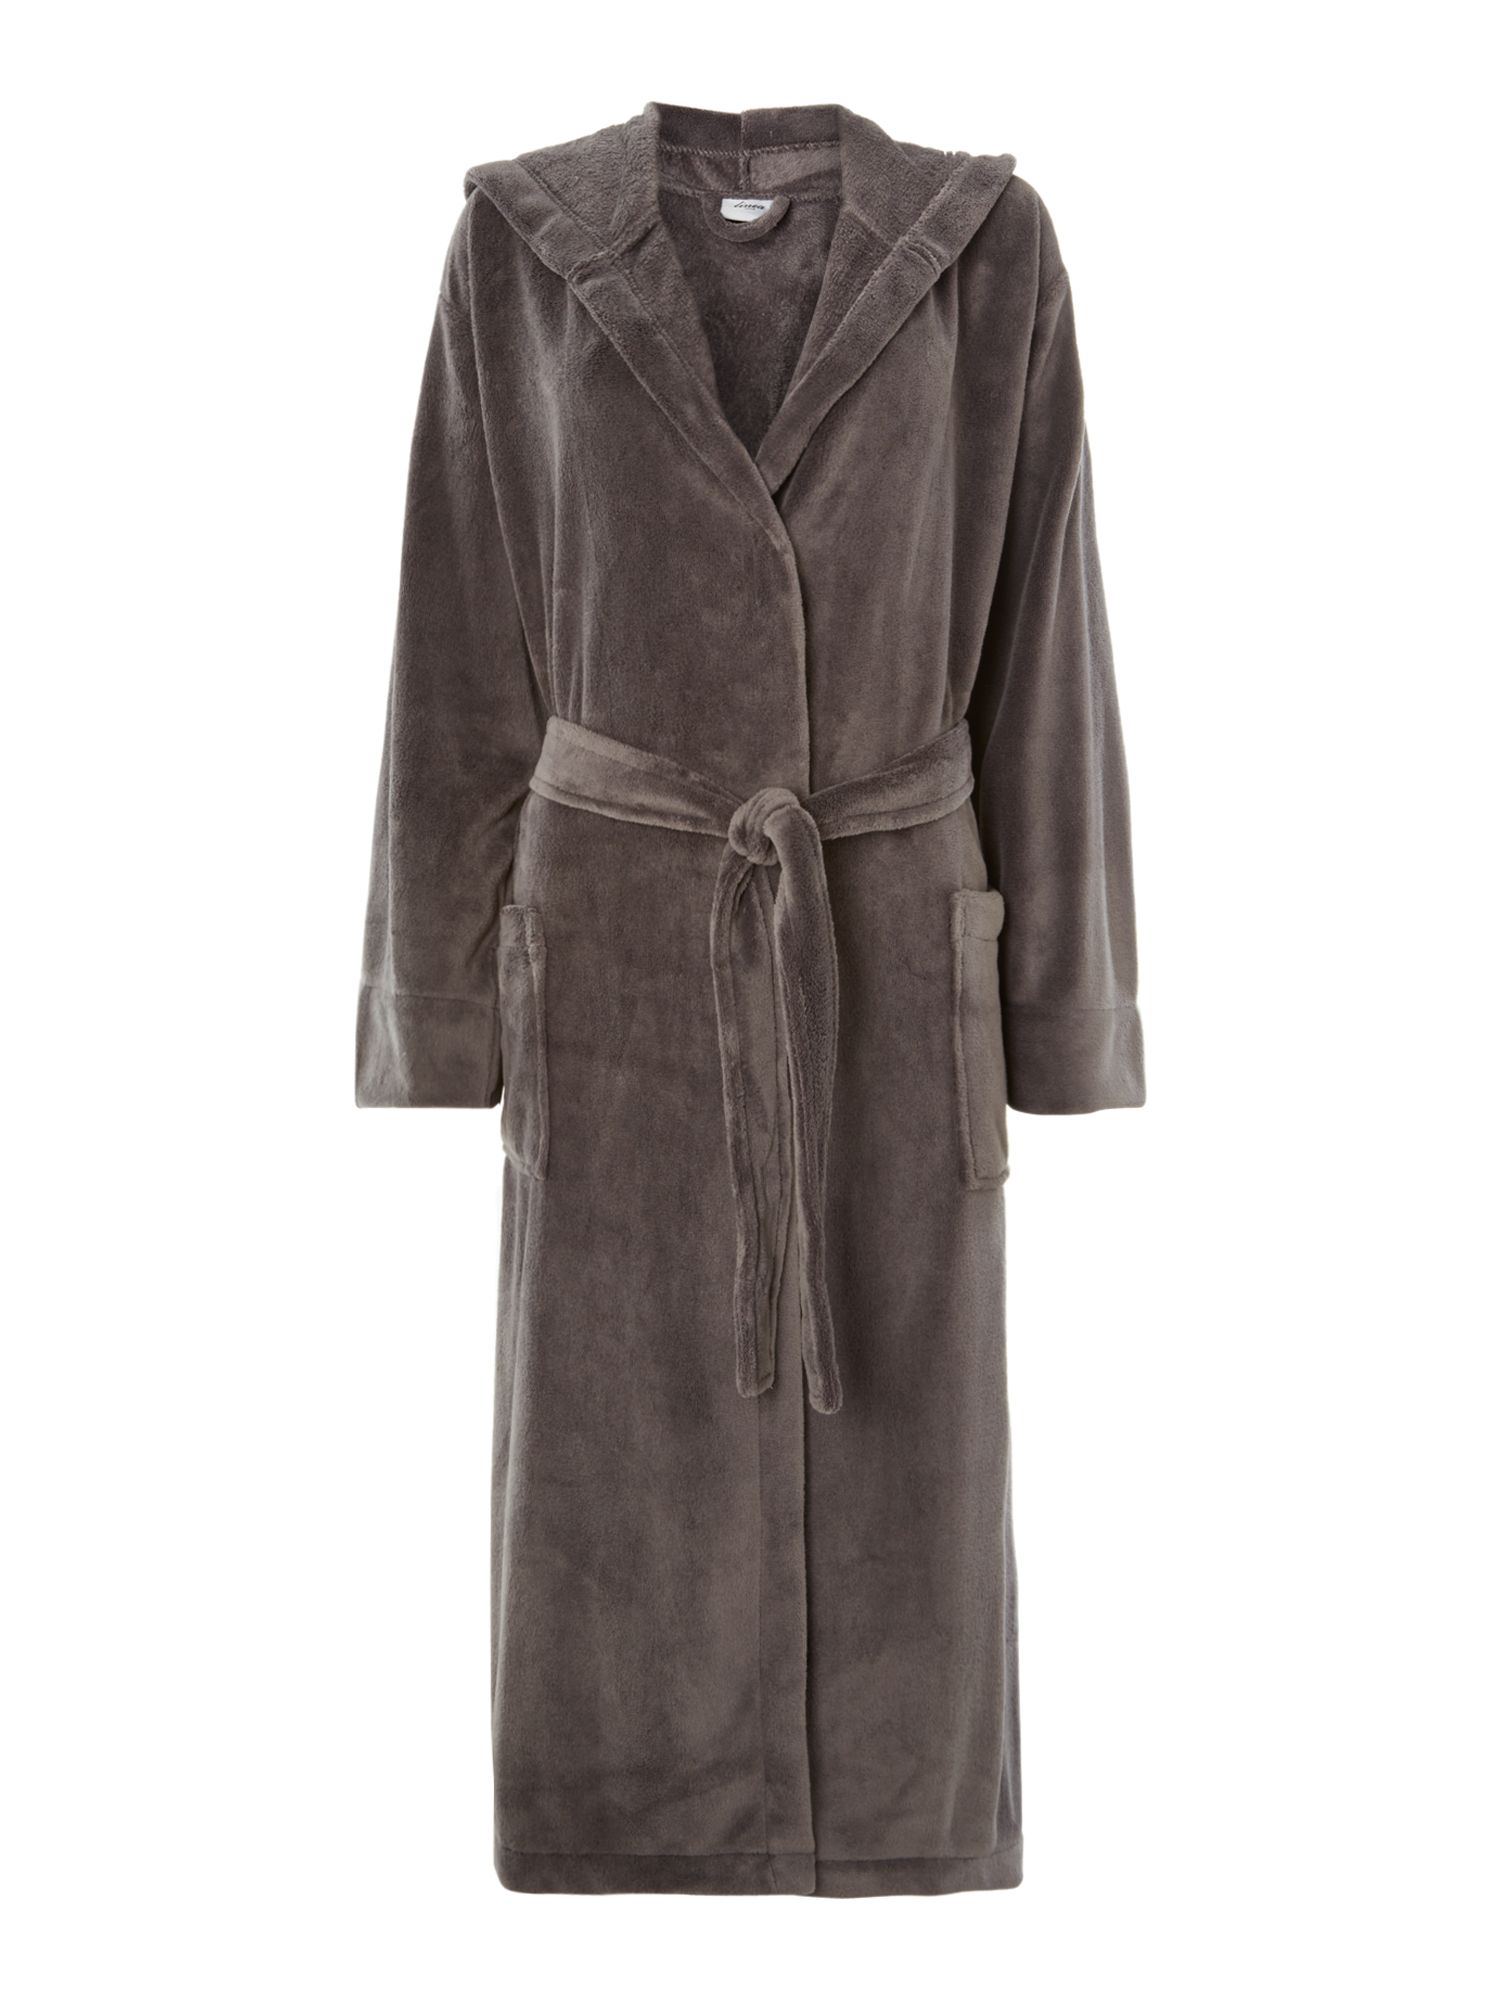 Fleece robe with hood in grey s/m